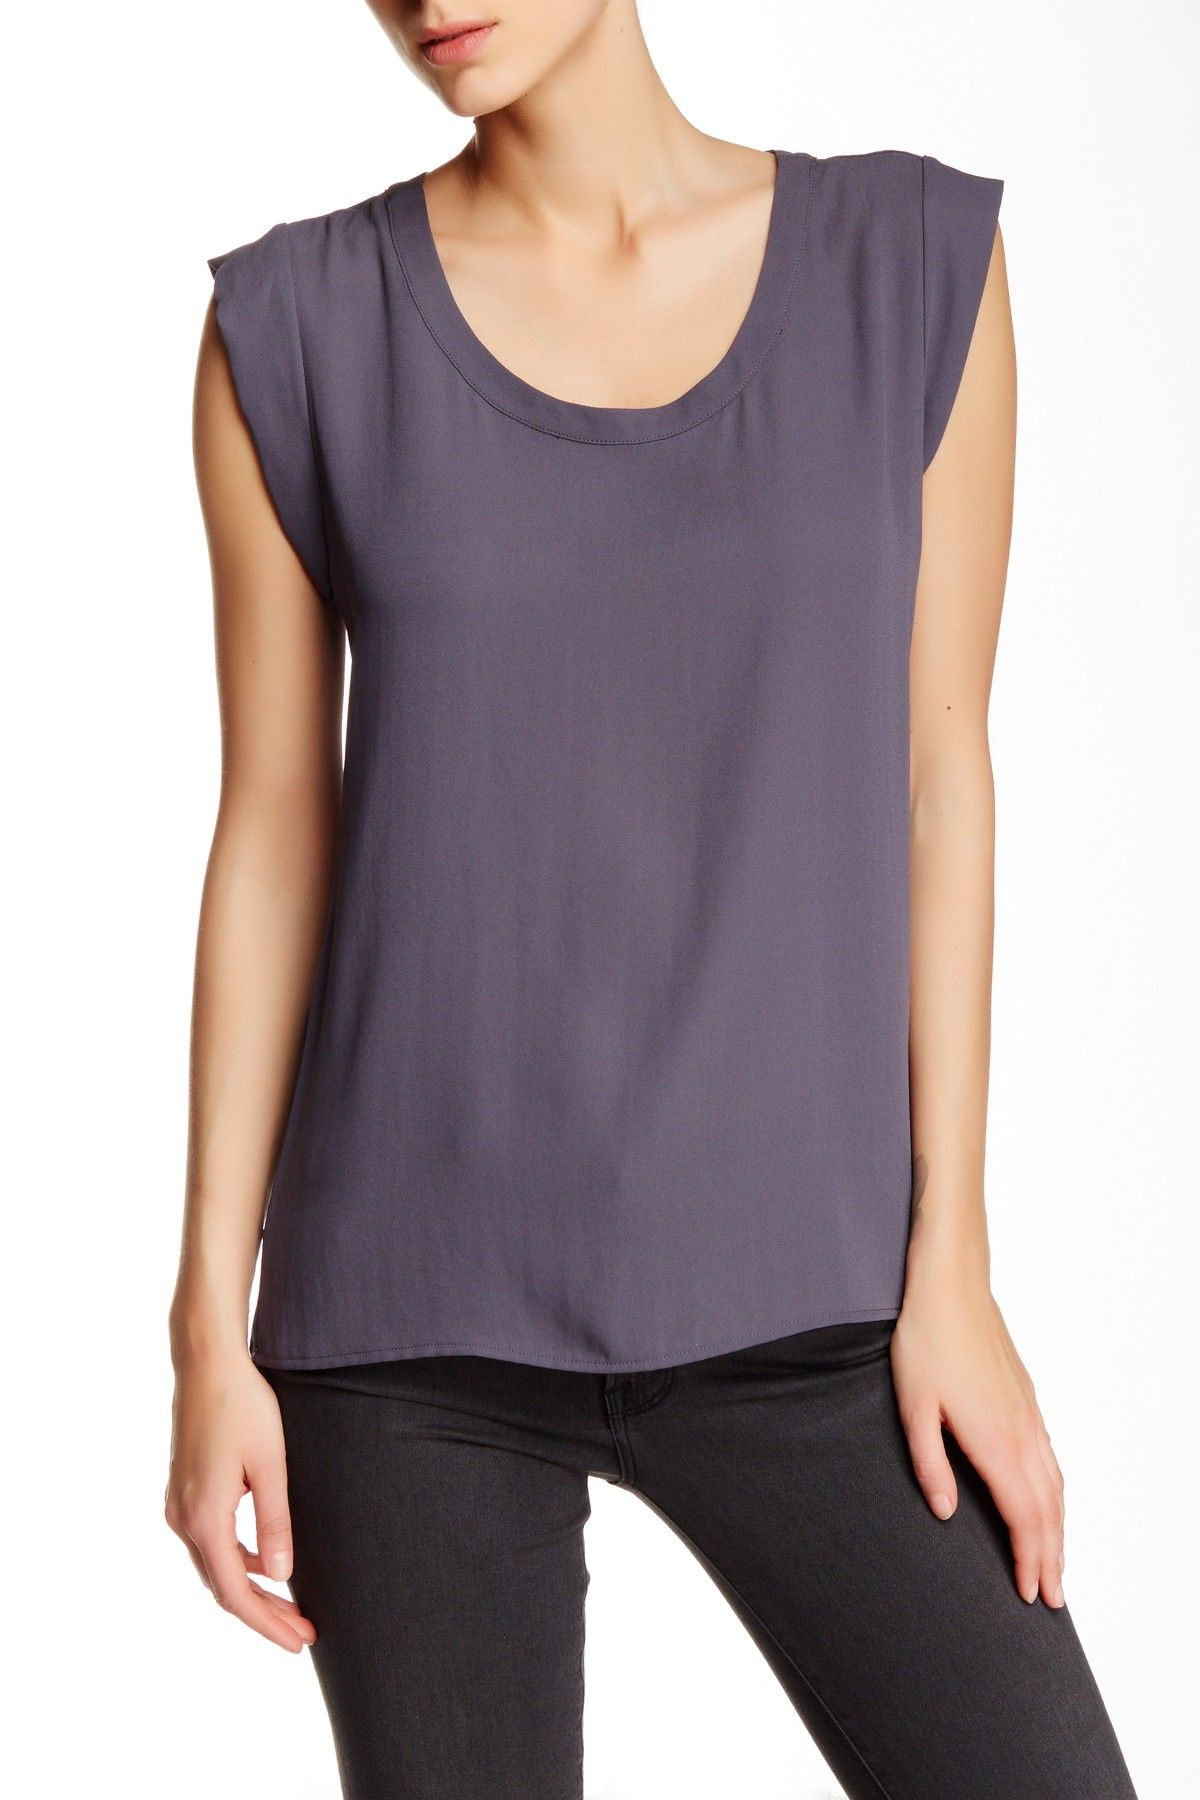 Pleione - Cap Sleeve Pleat Back Blouse at Nordstrom Rack. Free Shipping on orders over $100.